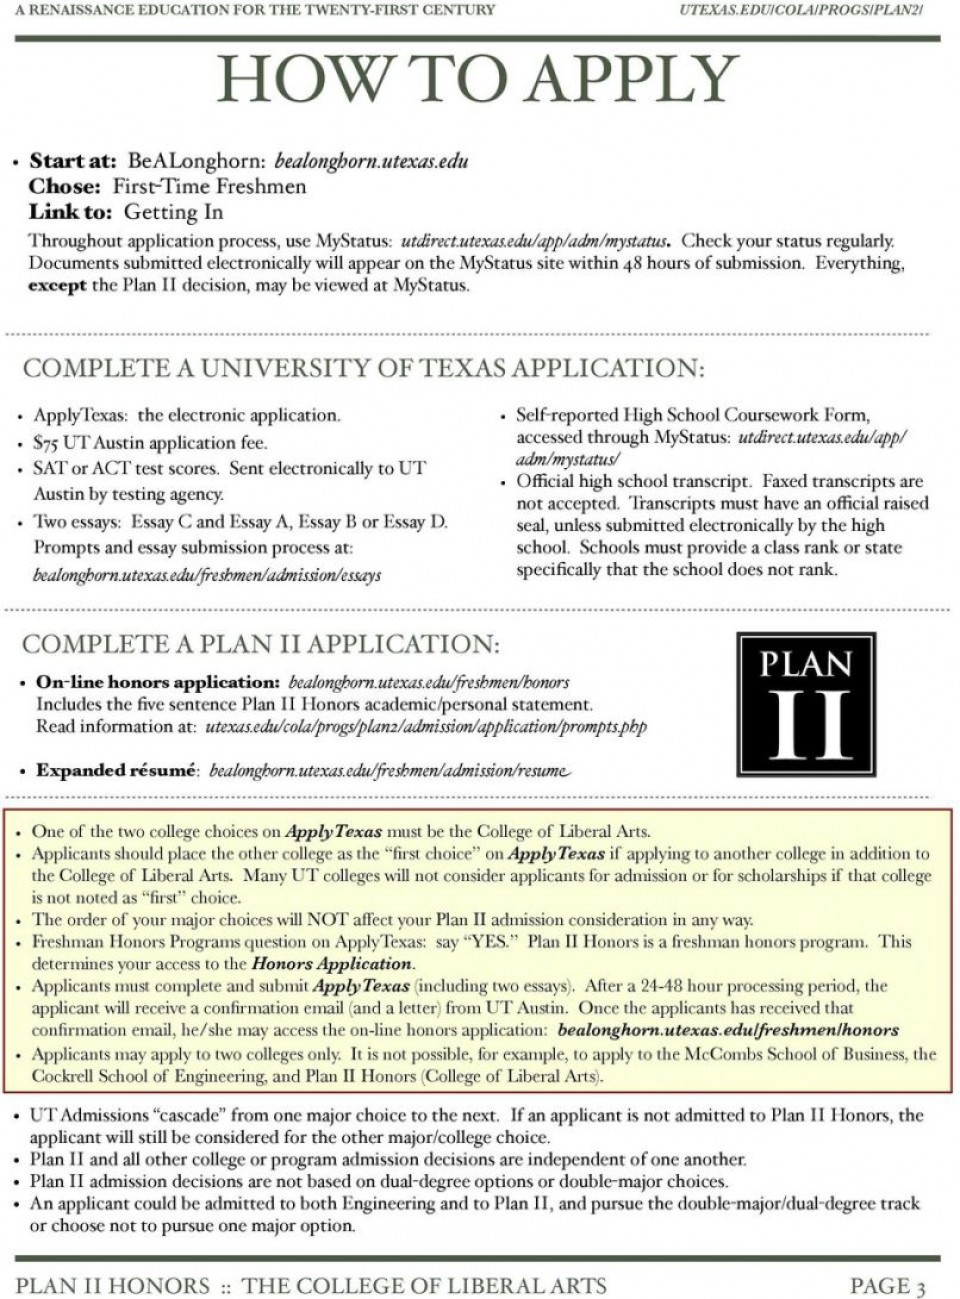 003 Applytexas Essay Prompts Poemdoc Or Apply Texas Topics P Fascinating B Examples A 2017 960